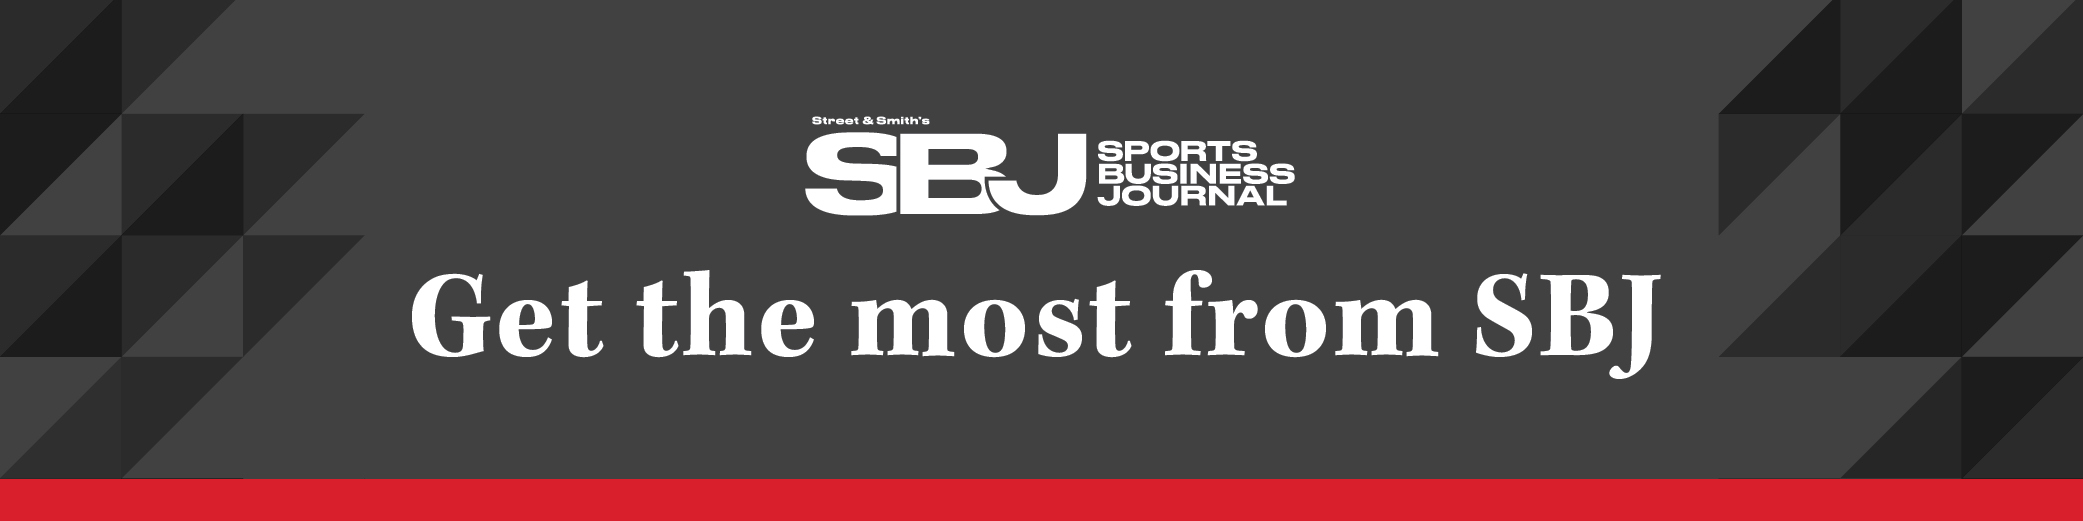 Get the most from SBJ